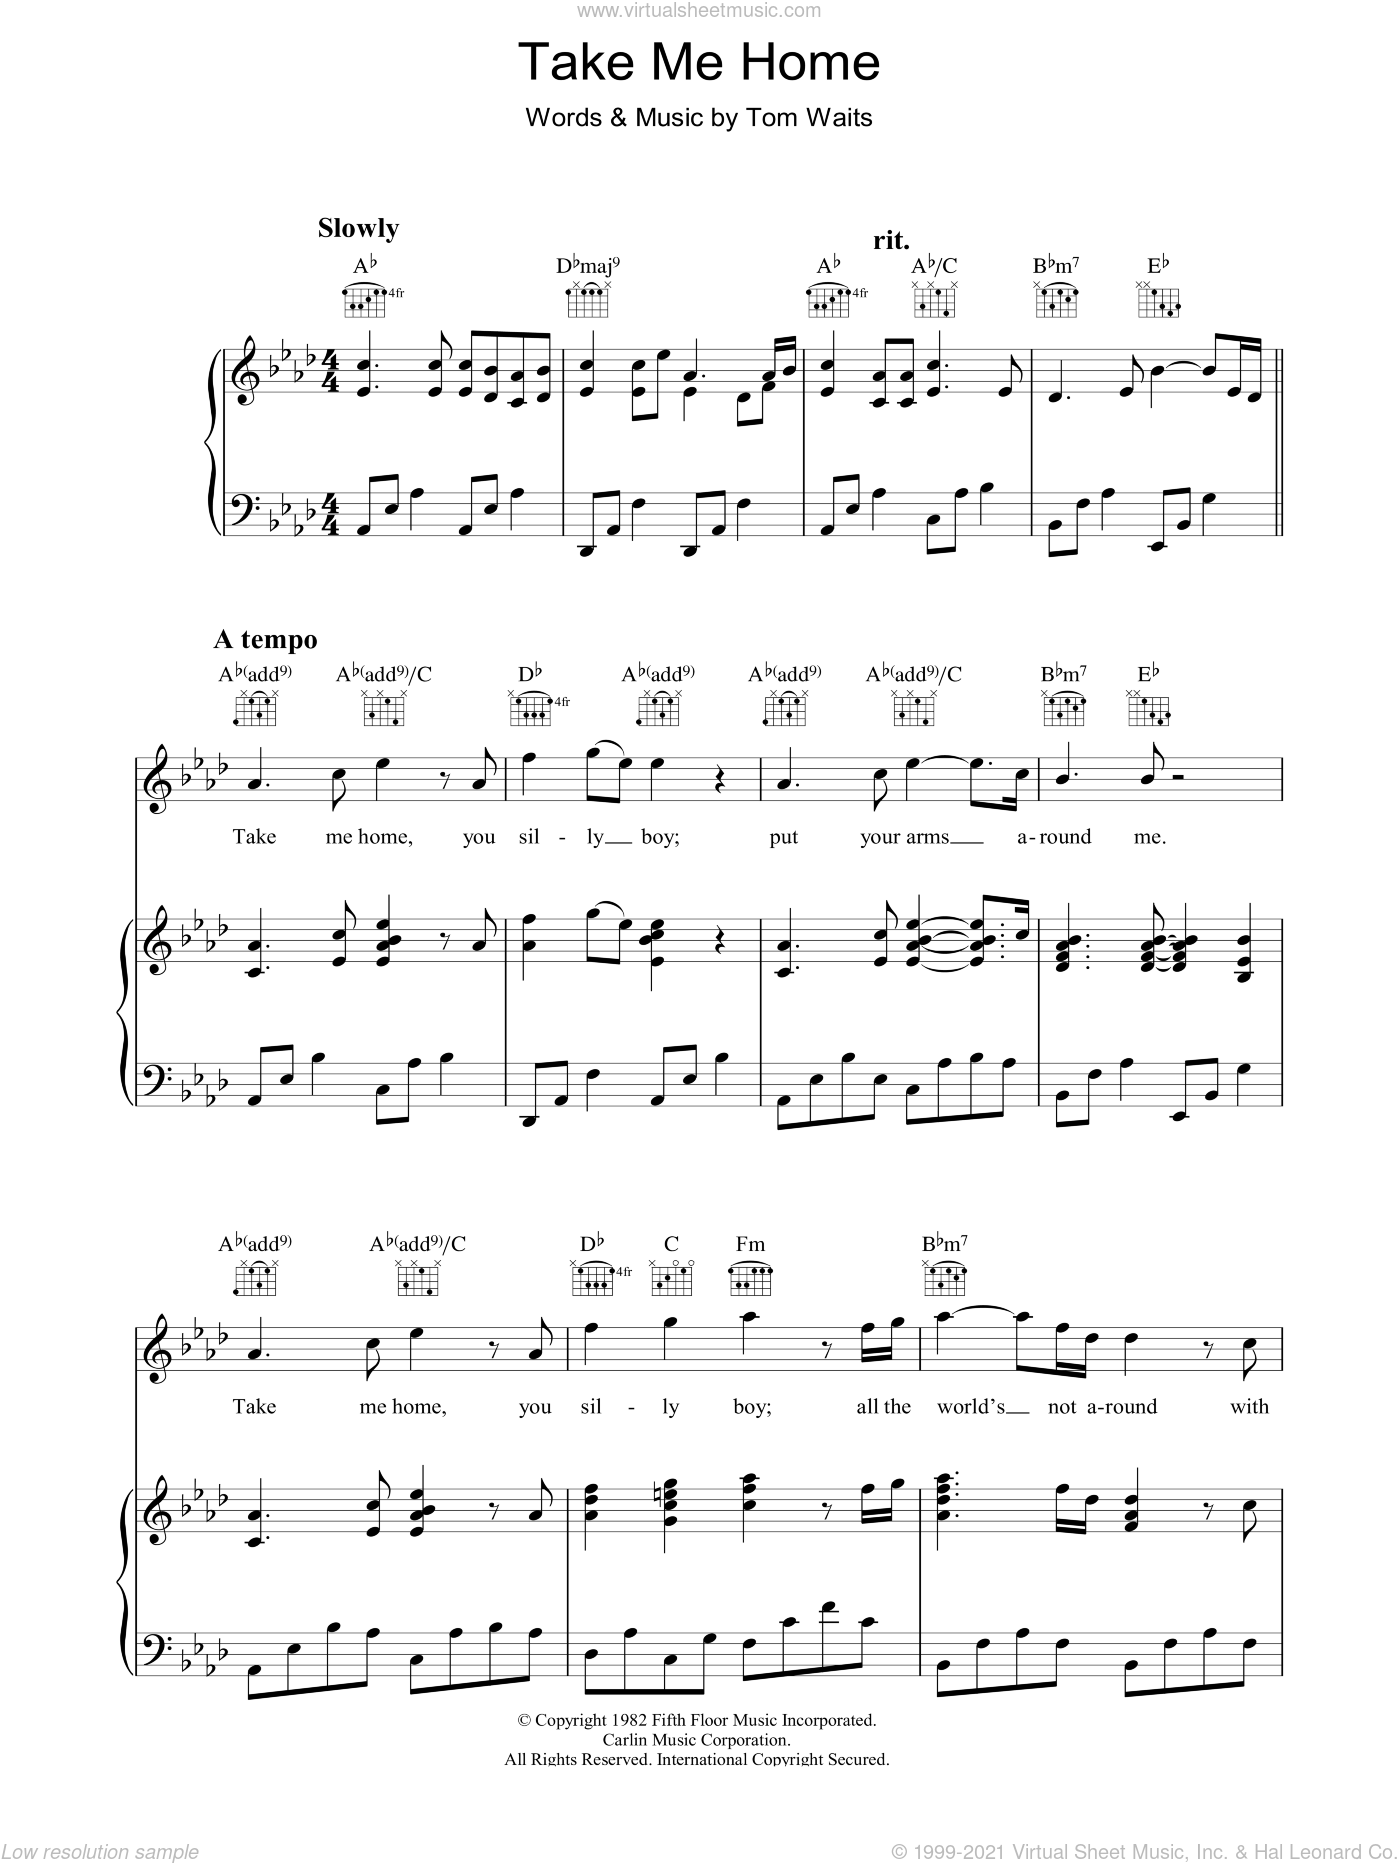 Take Me Home sheet music for voice, piano or guitar by Tom Waits. Score Image Preview.